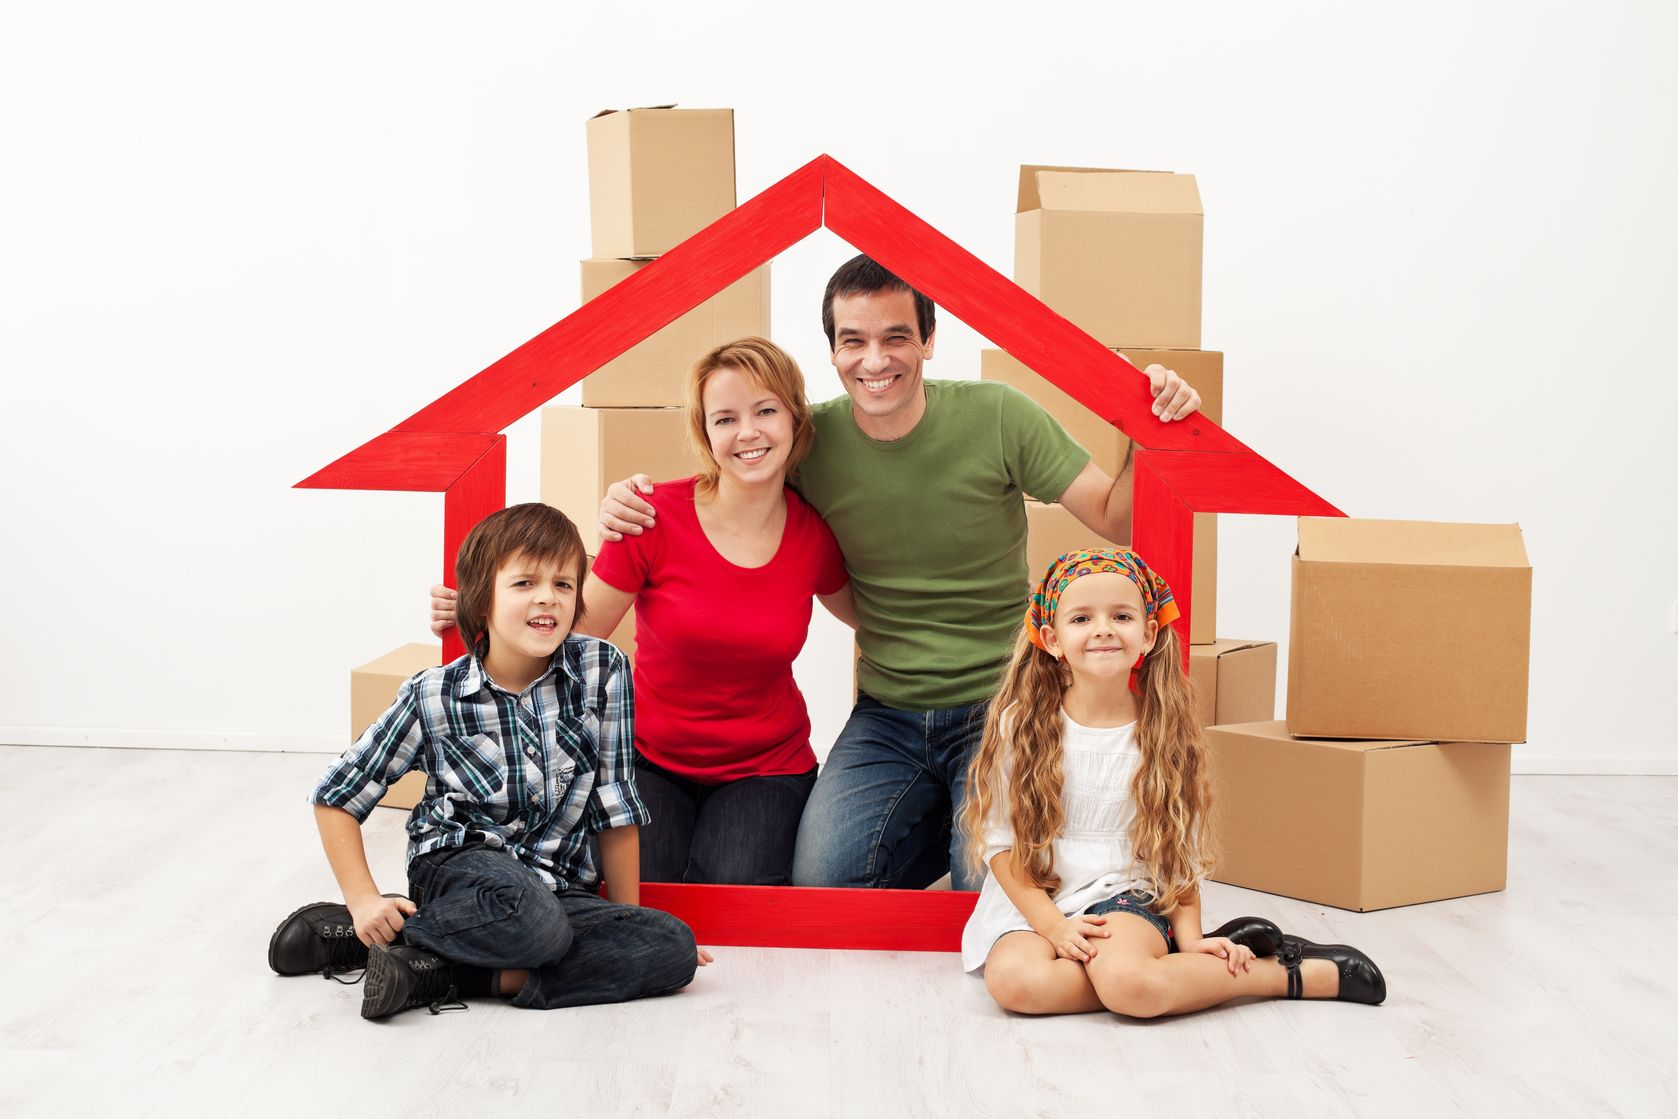 Plano, TX. Homeowners Insurance